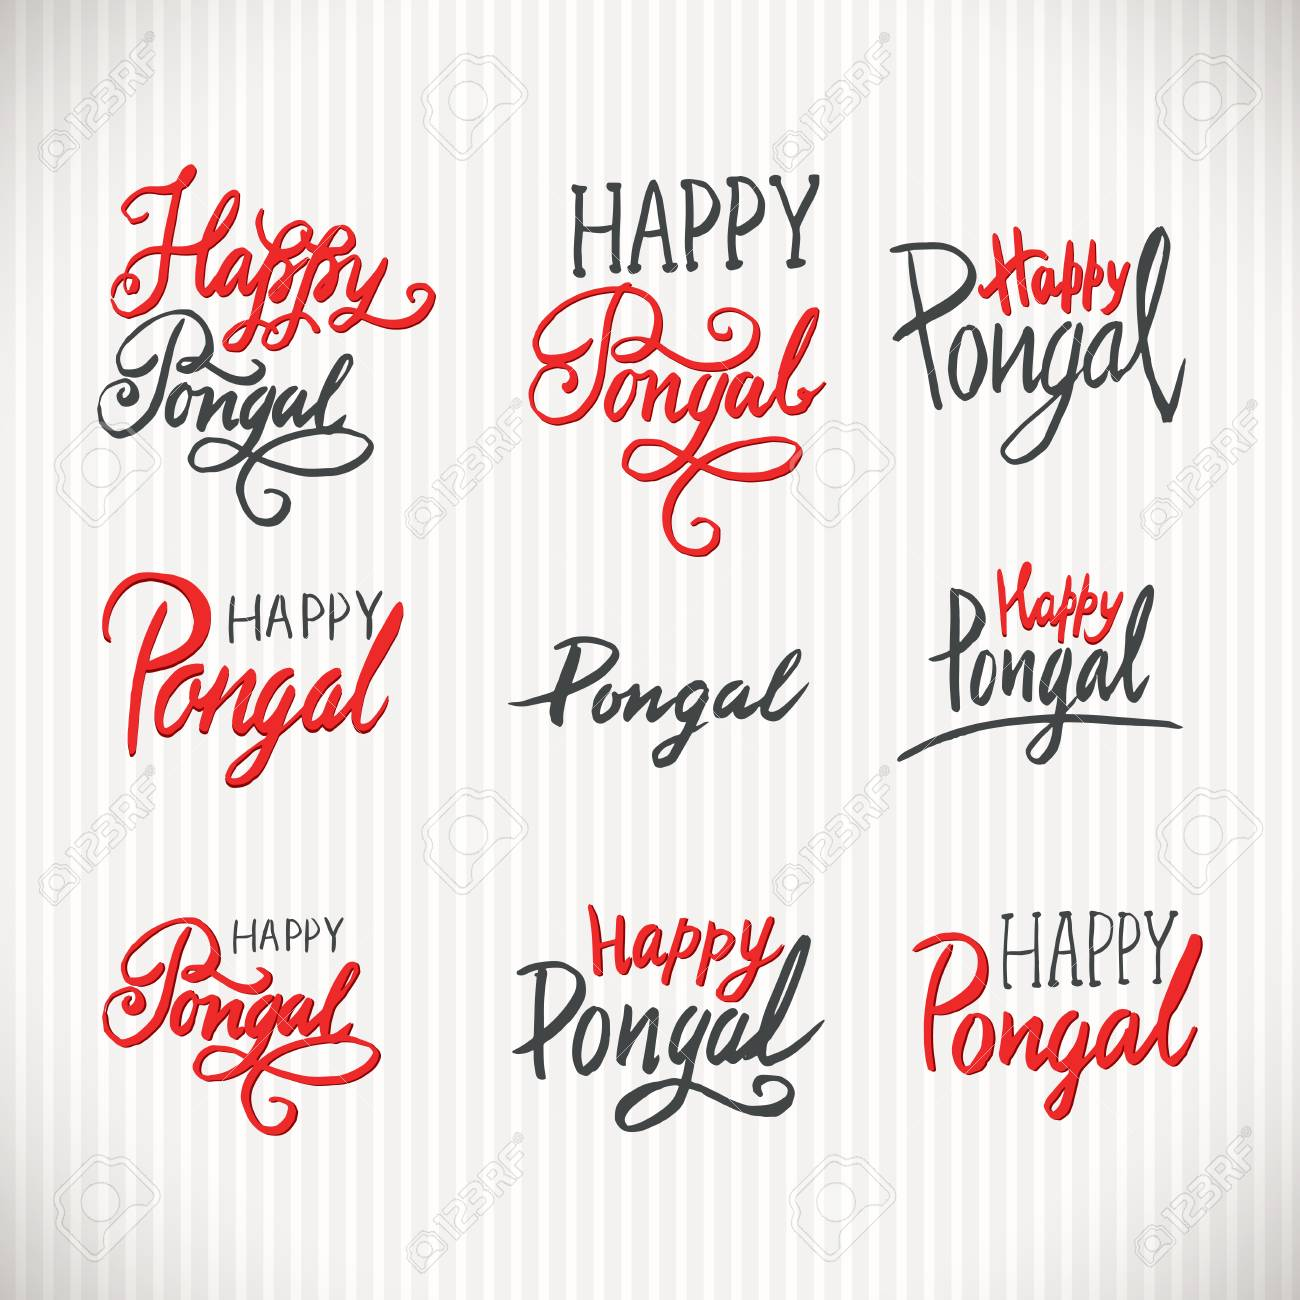 Happy pongal holiday hand written lettering vintage style labels greeting card text templates happy pongal holiday hand written lettering vintage style labels phrases or quotes set kristyandbryce Choice Image